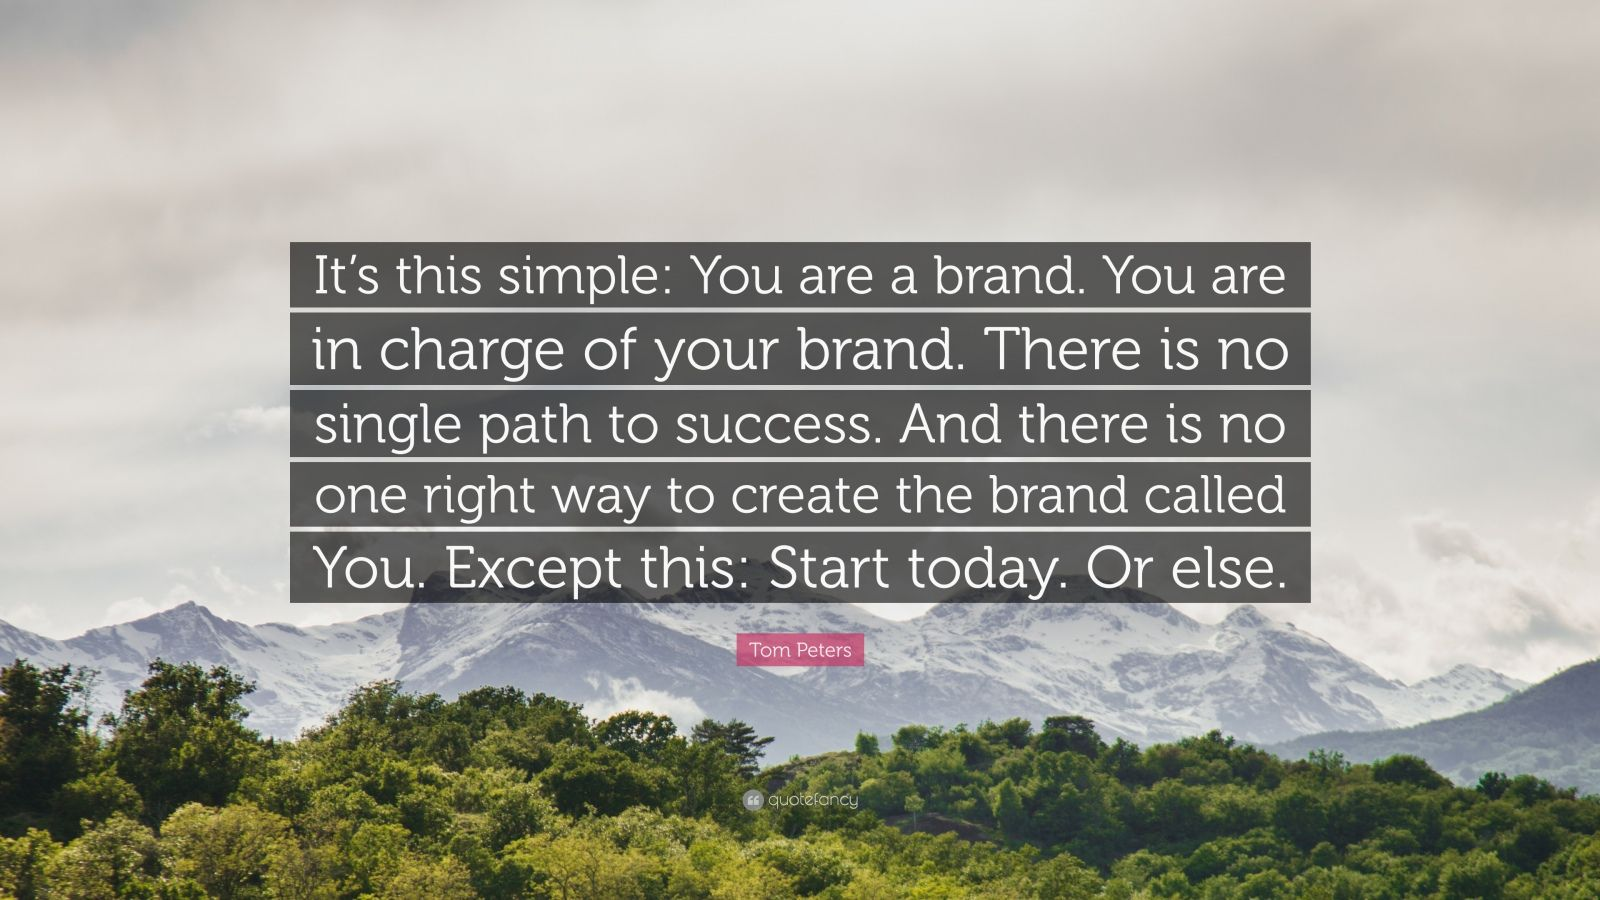 """Tom Peters Quote: """"It's this simple: You are a brand. You are in charge of your brand. There is no single path to success. And there is no one right way to create the brand called You. Except this: Start today. Or else."""""""